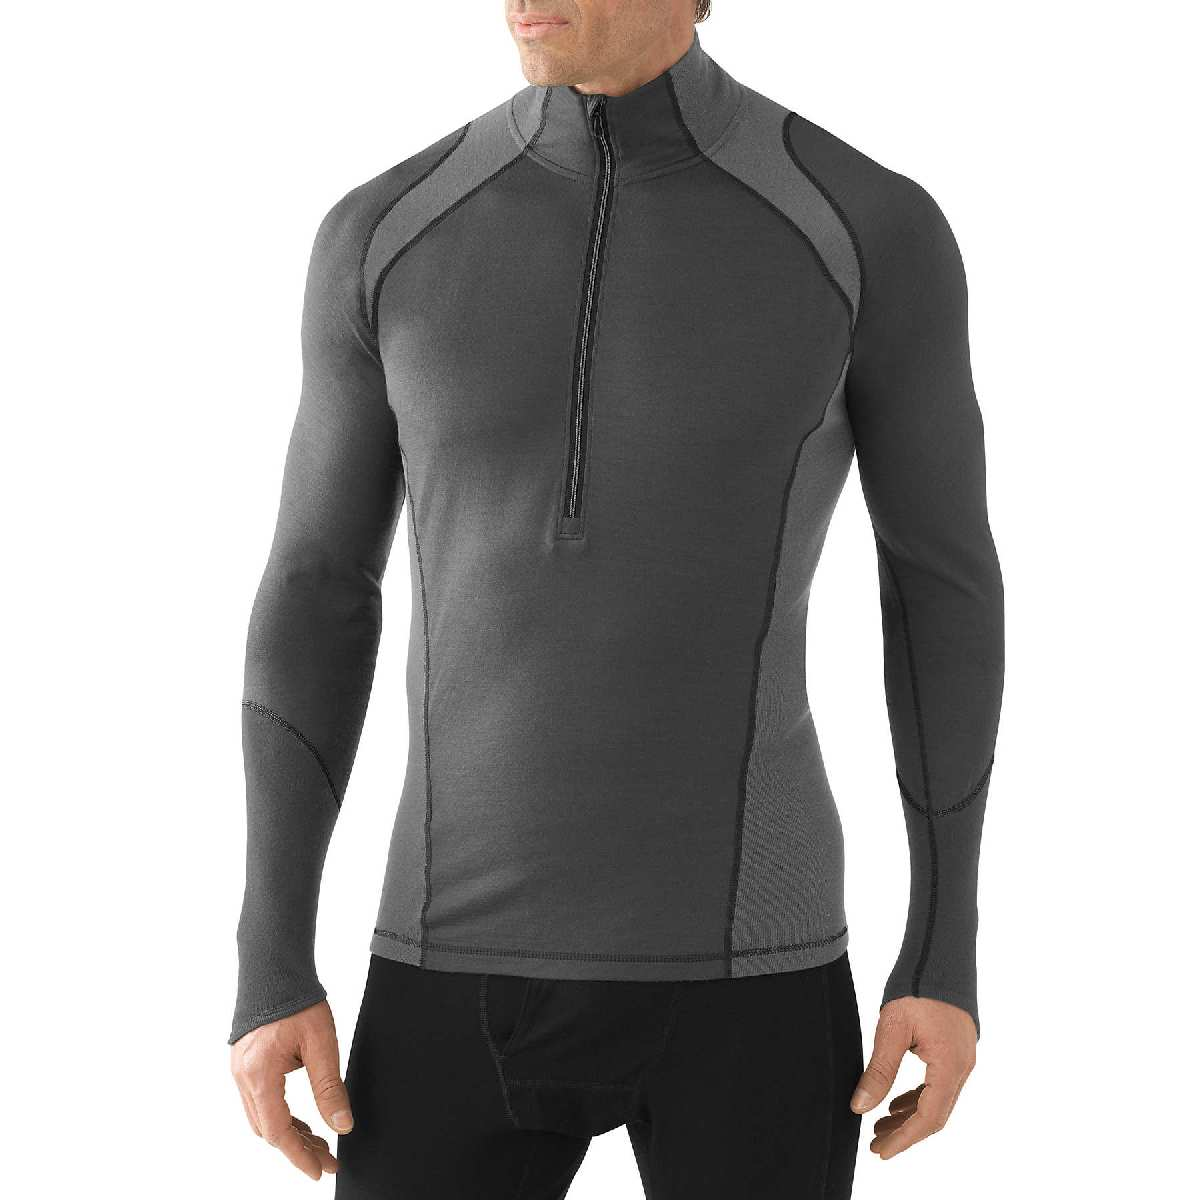 SmartWool NTS Light 195 Zip T Long Sleeve Base Layer Men's Size S Graphite U.S.A. & Canada